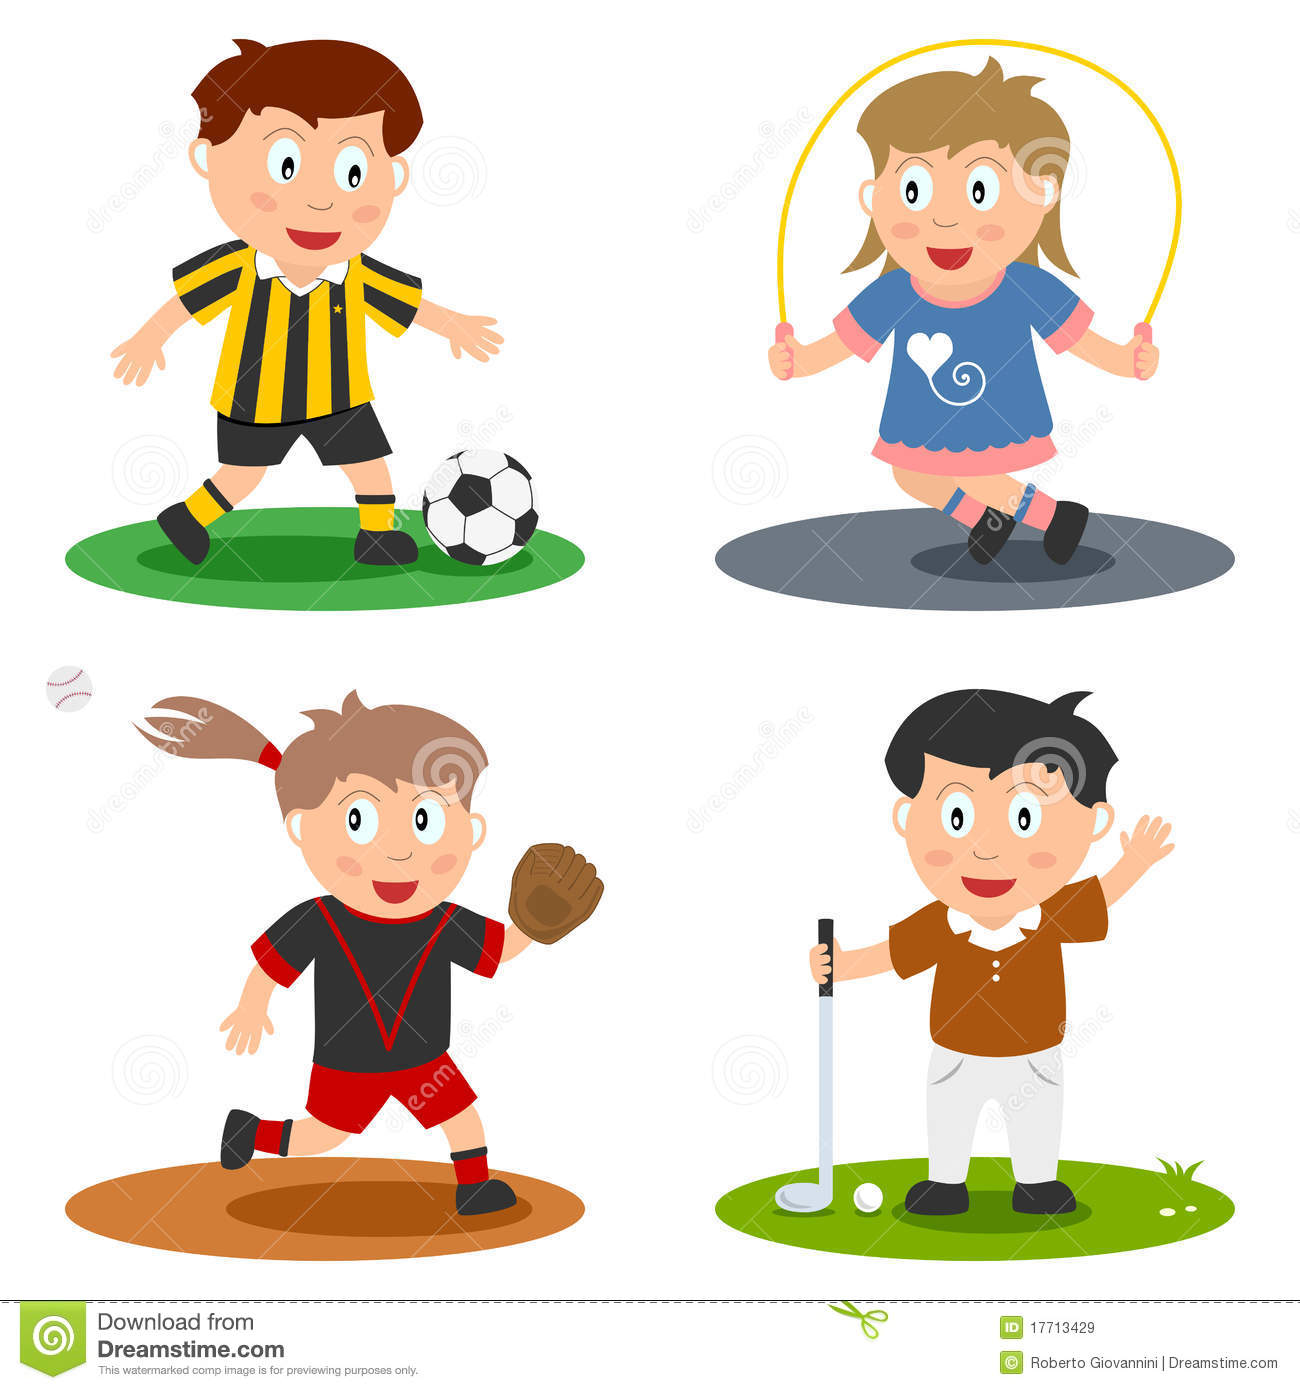 sport kids collection 3 - Sports Images For Kids